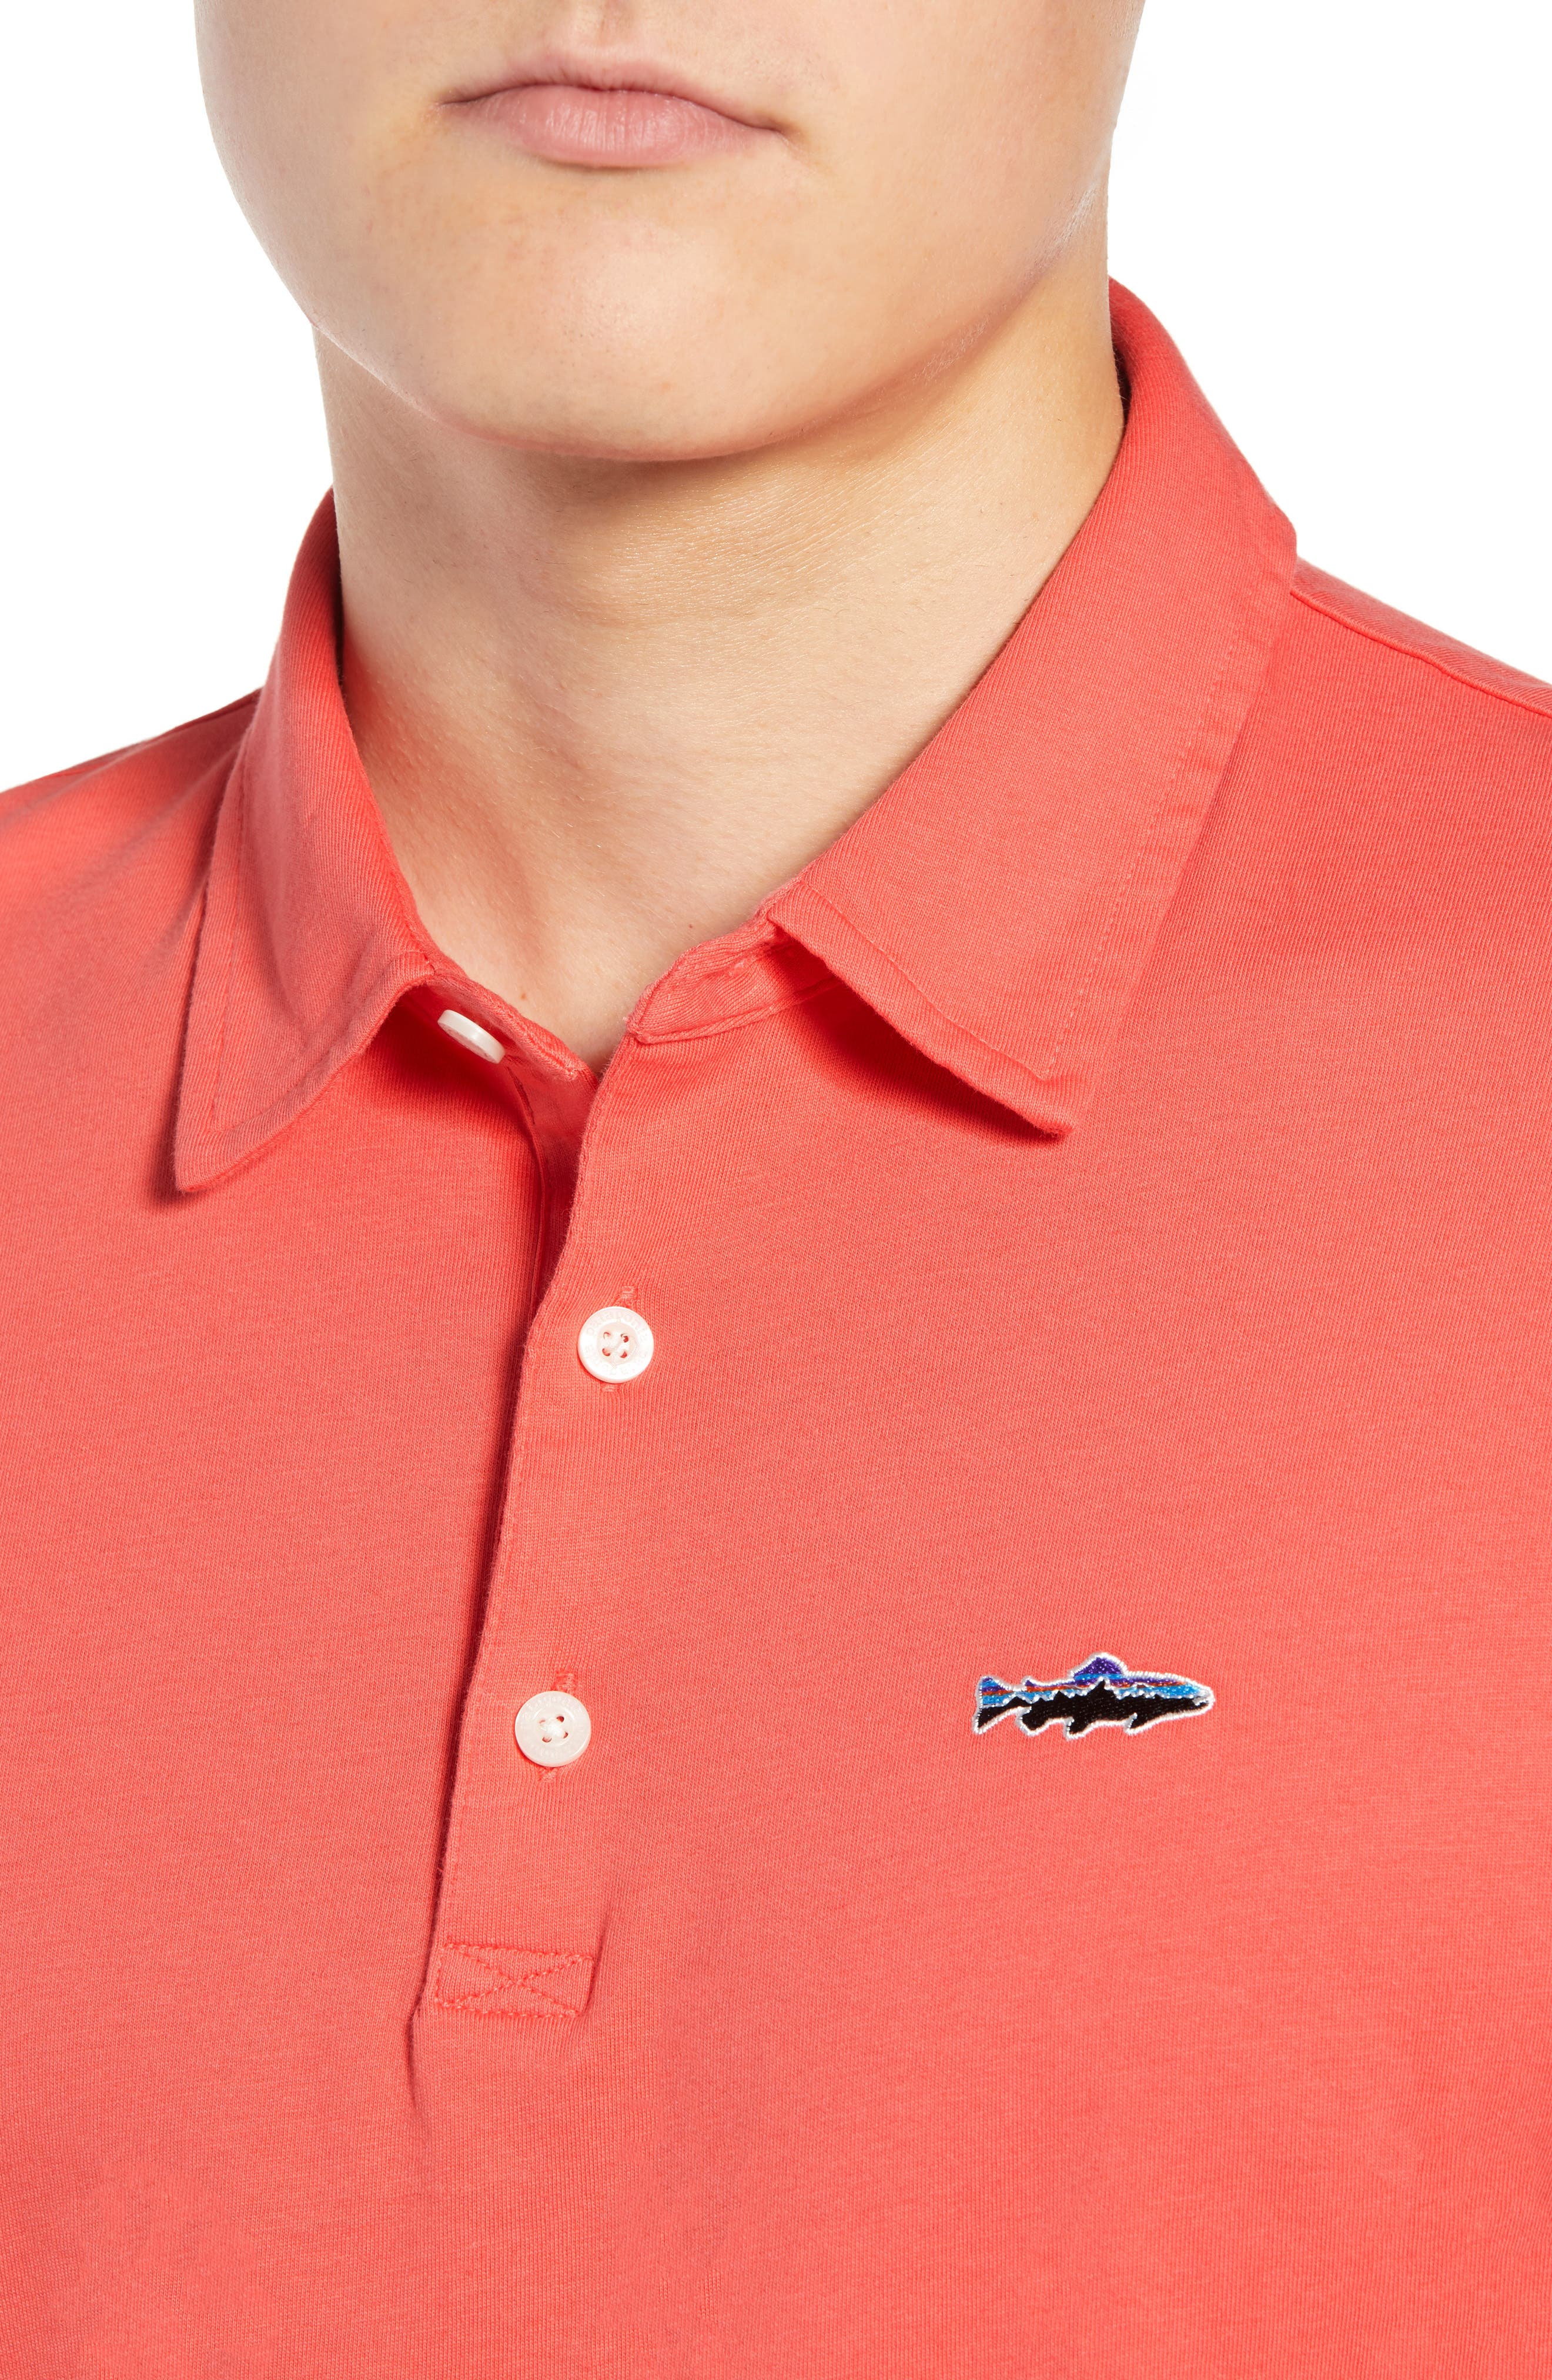 'Trout Fitz Roy' Organic Cotton Polo,                             Alternate thumbnail 4, color,                             SPICED CORAL